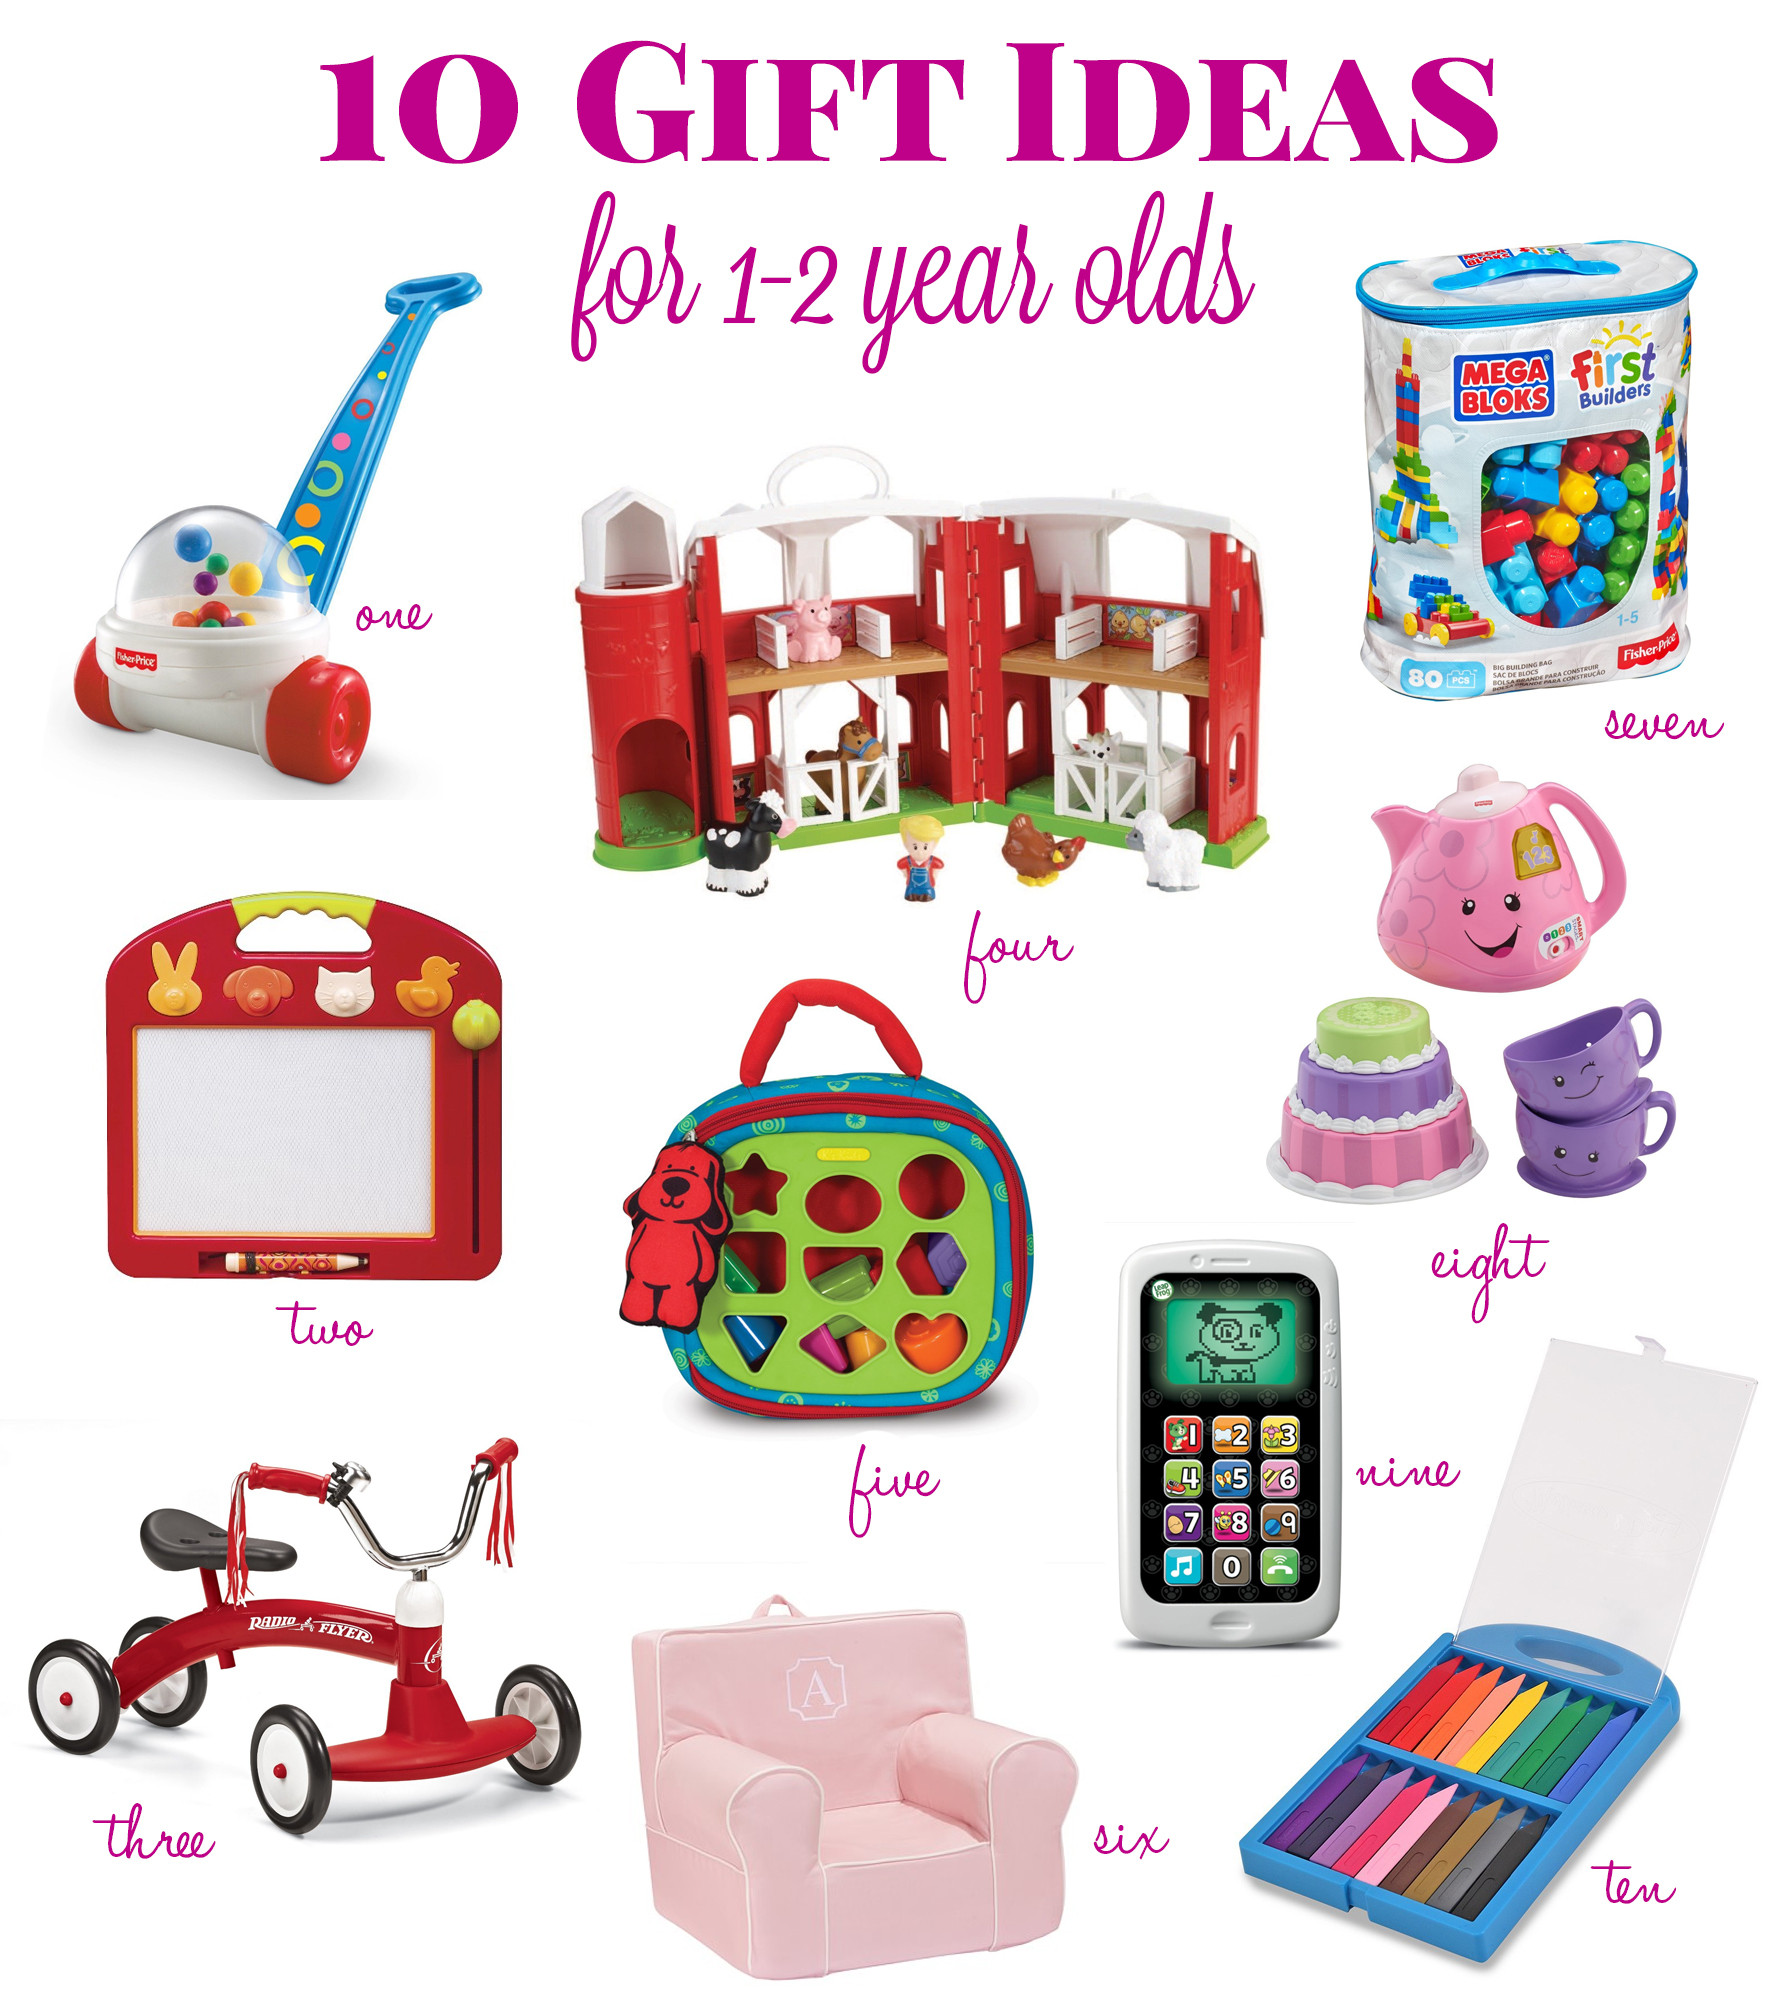 Best ideas about Gift Ideas For 1 Year Old . Save or Pin Gift Ideas for a 1 Year Old Life s Tidbits Now.